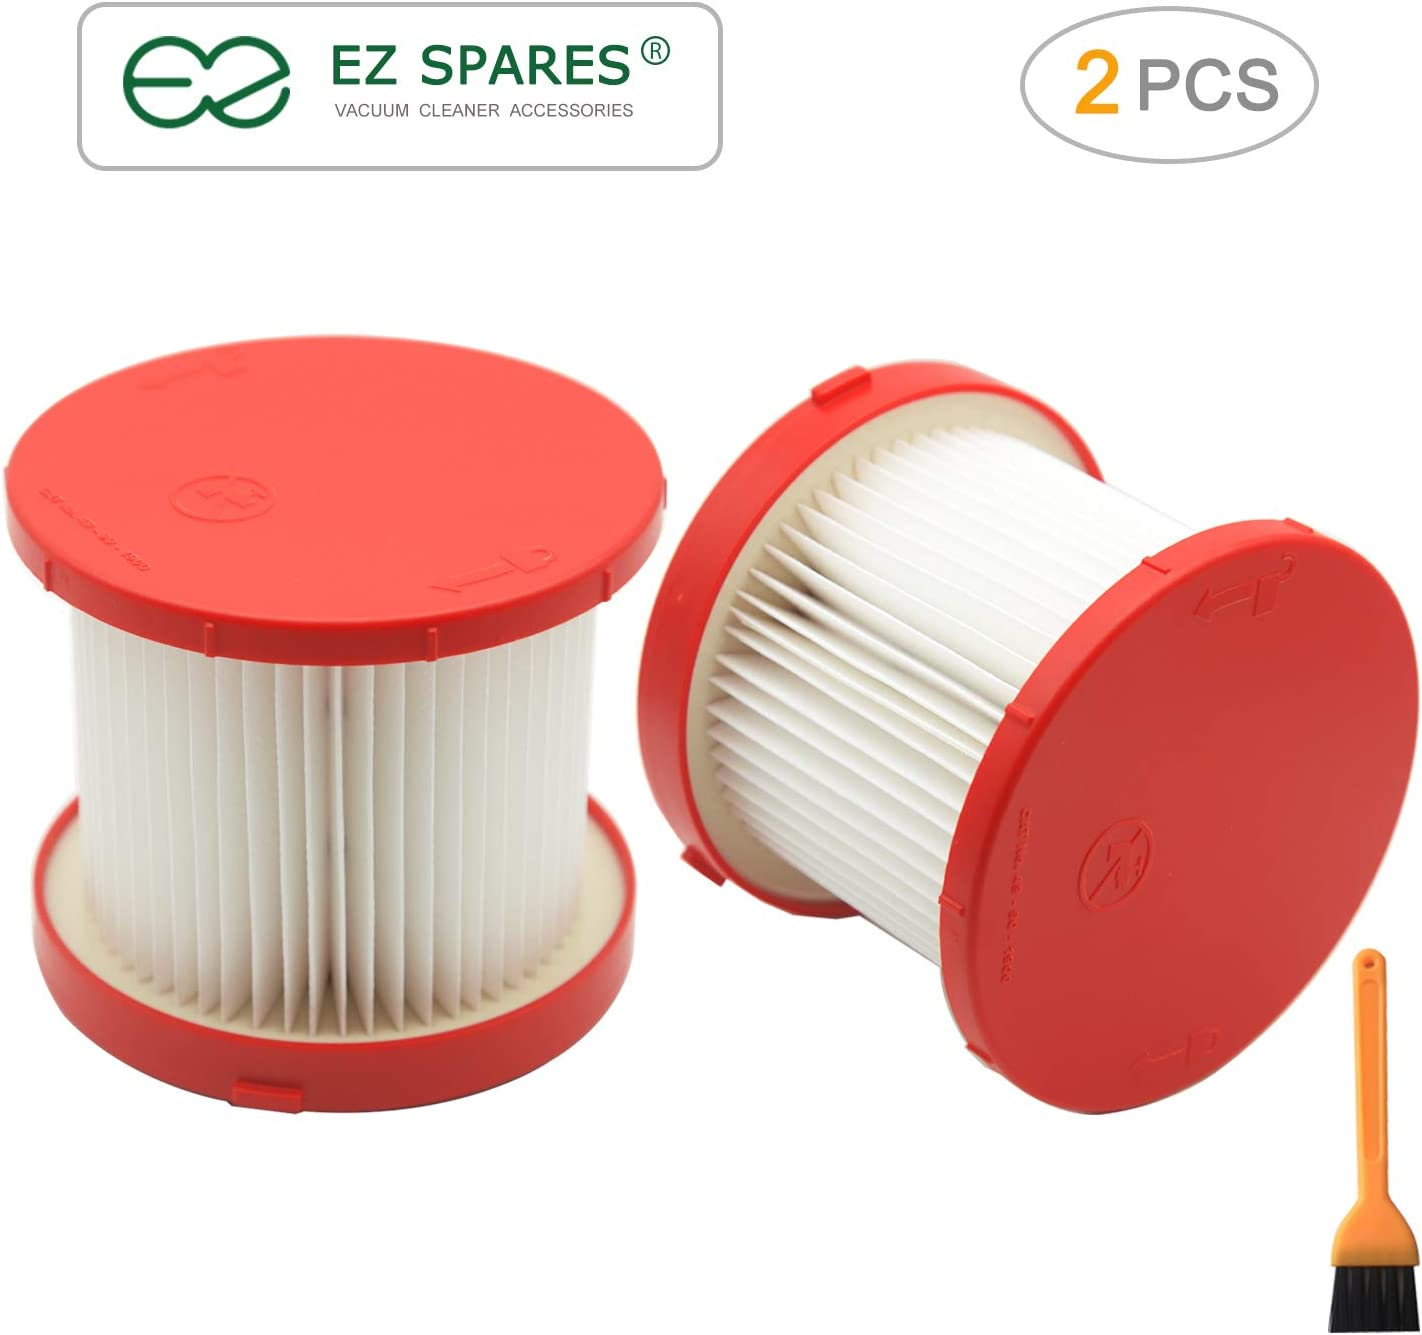 EZ SPARES 2pcs Replacements for Milwaukee,49-90-1900 Filter,Wet/Dry 0780-20 or 0880-20 Hepa Kit Attachment